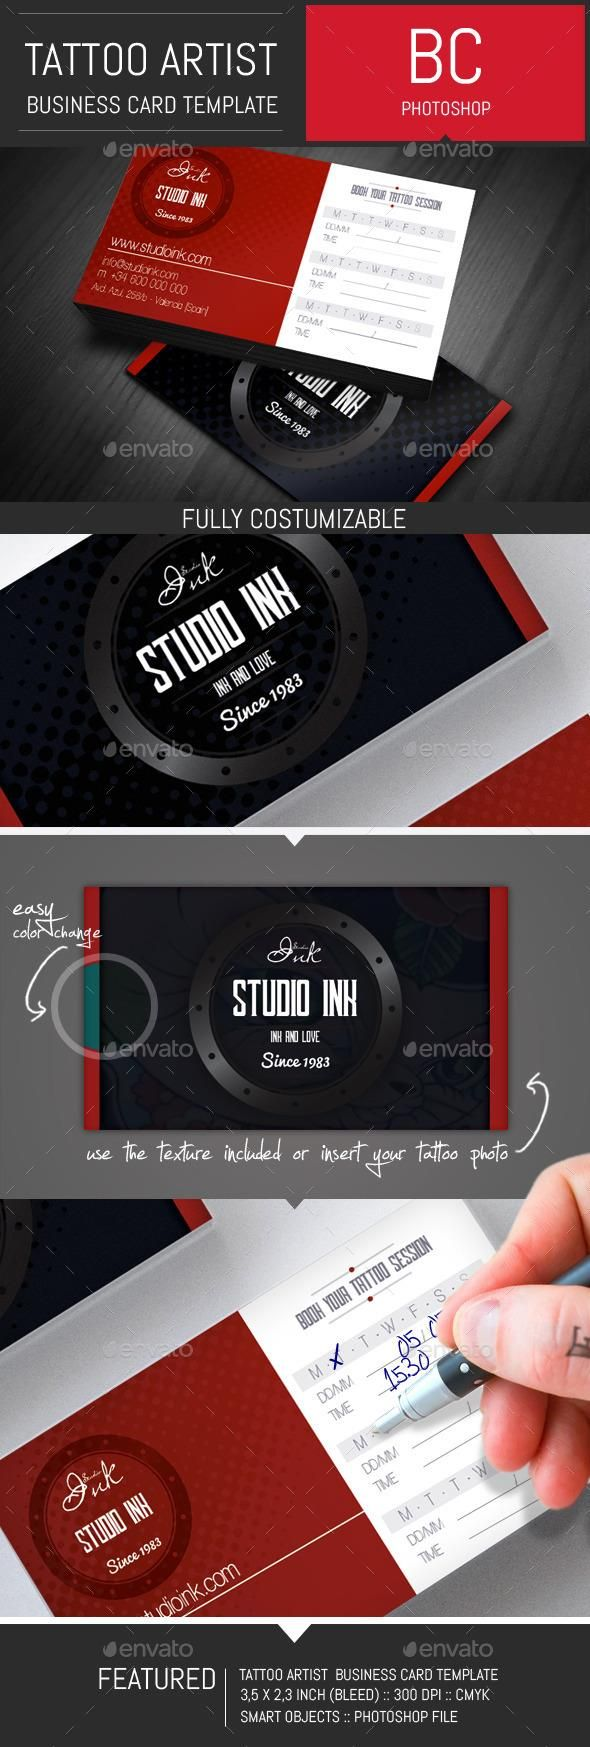 16 best Tattoo Business Card Ideas images on Pinterest | Name cards ...